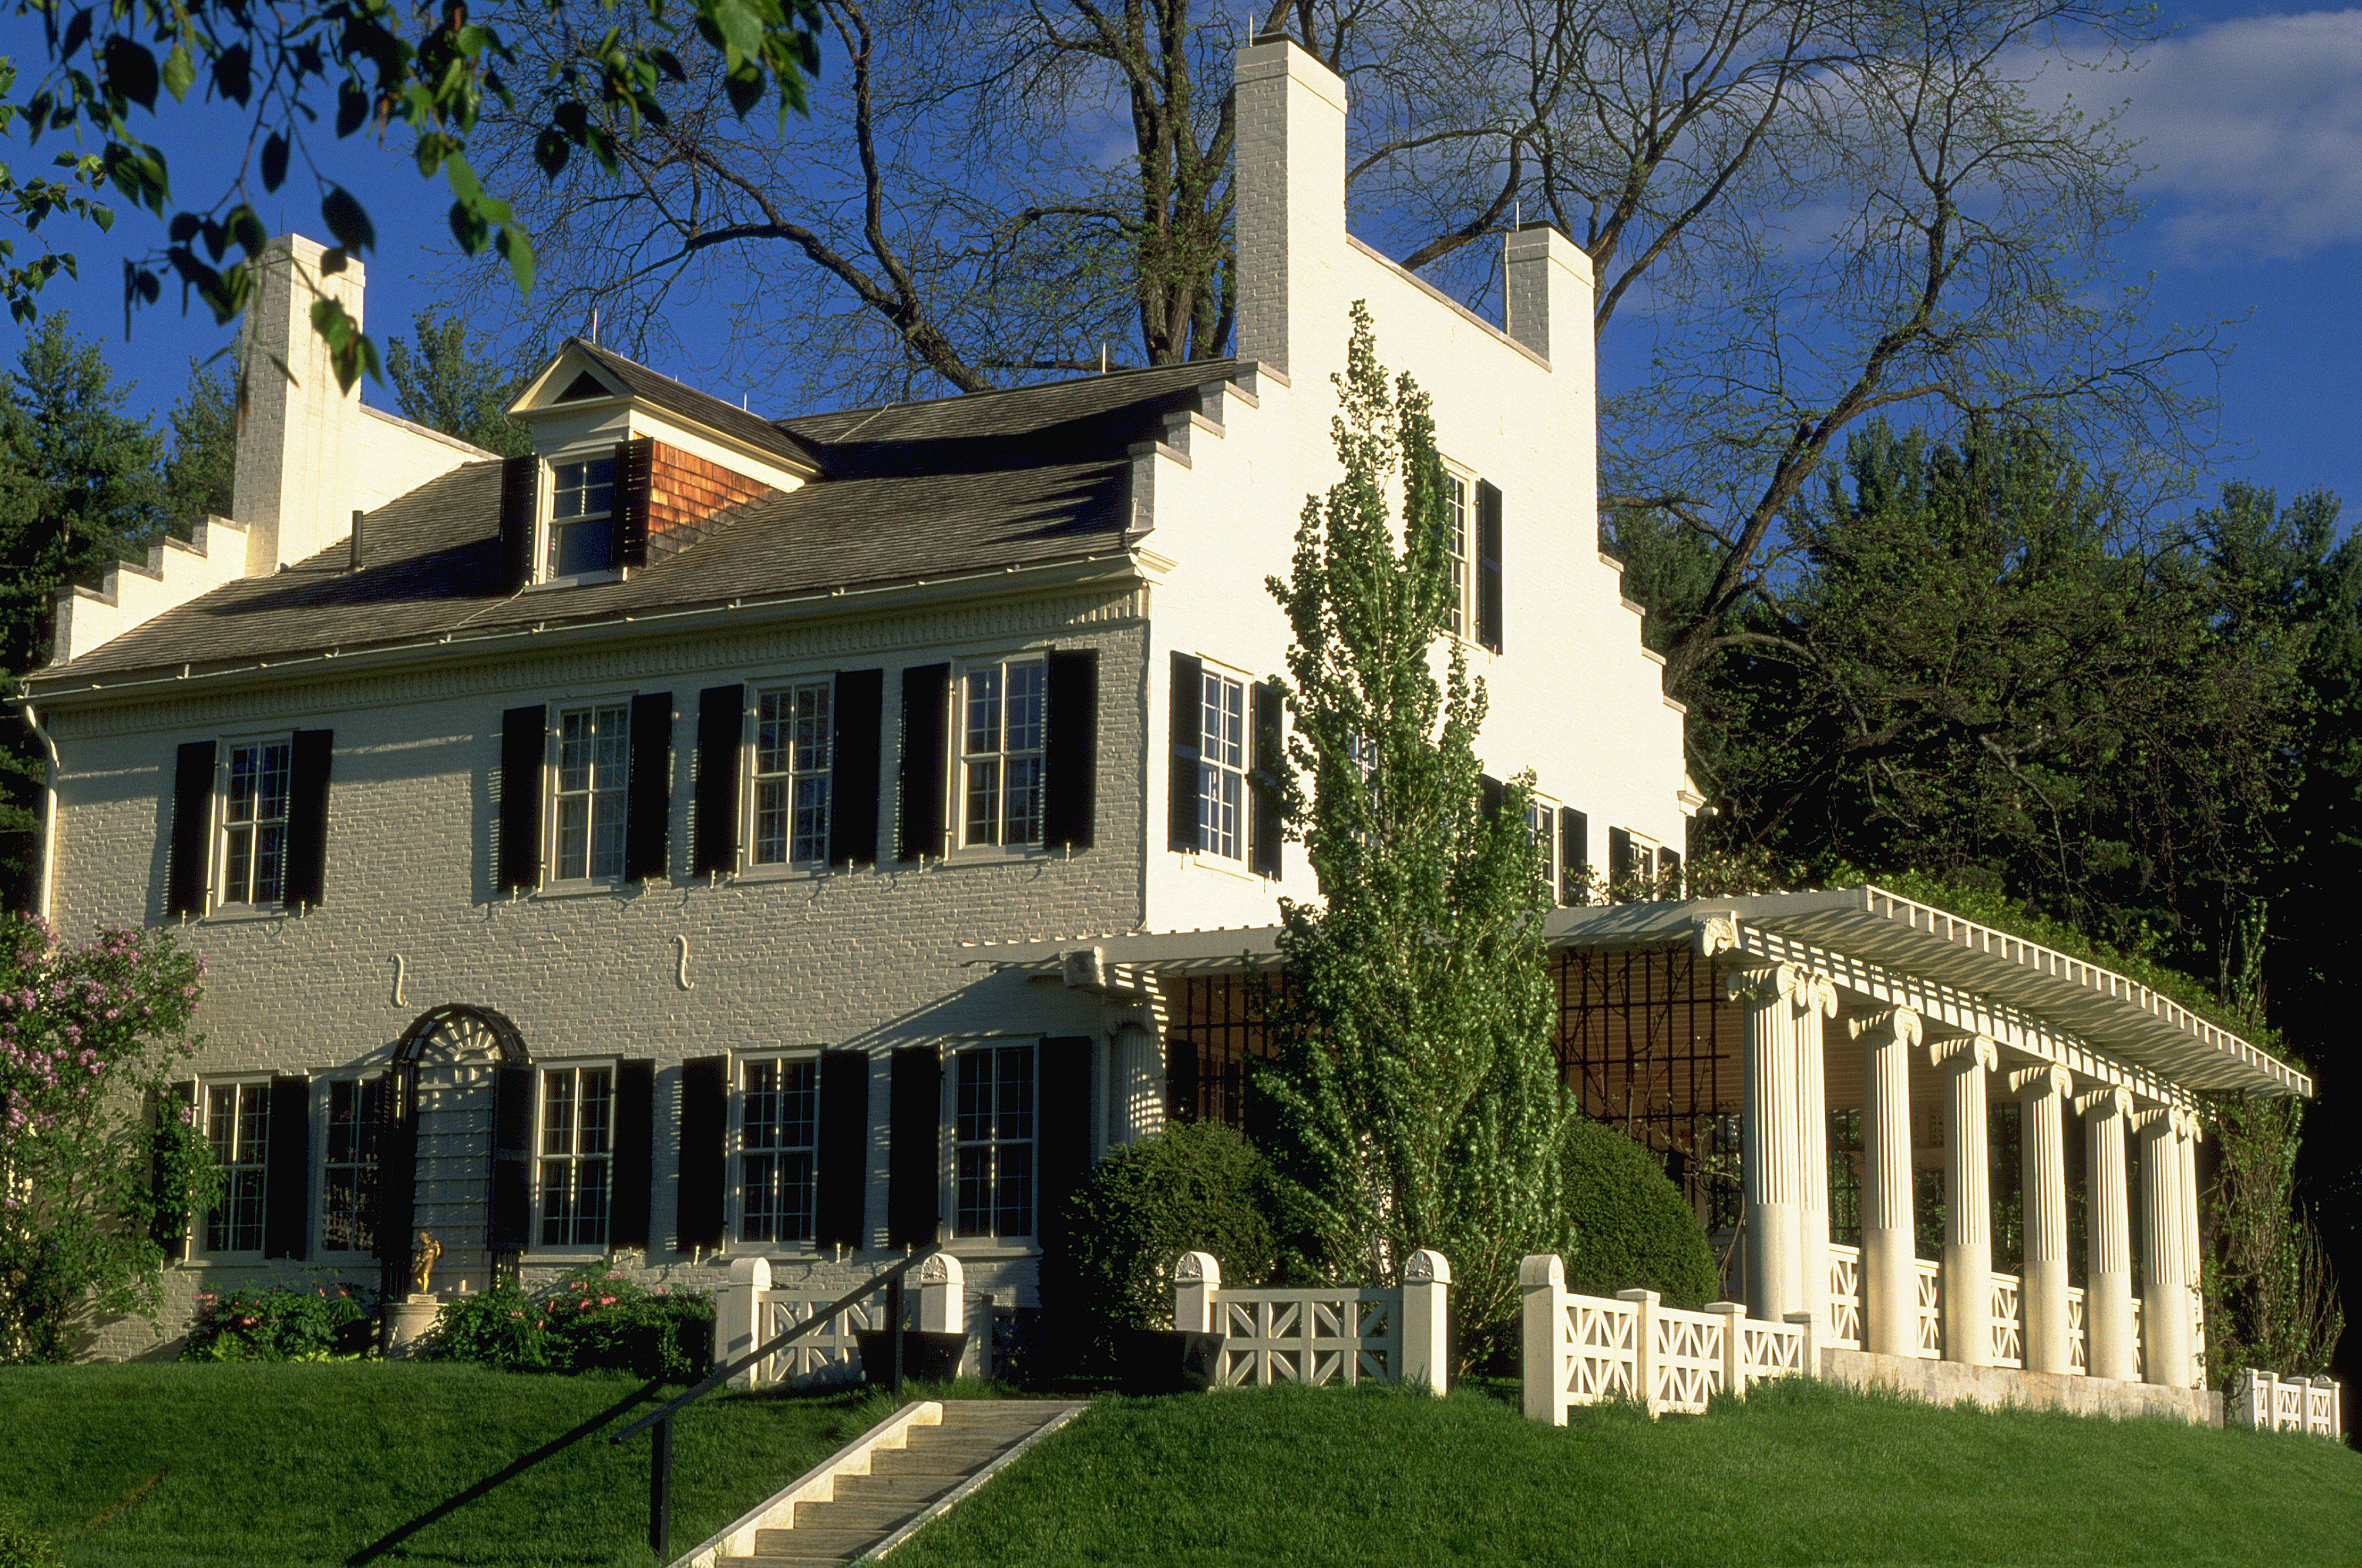 large two-story white house with dark shutters, collonade side porch, and large parapets on each side gable